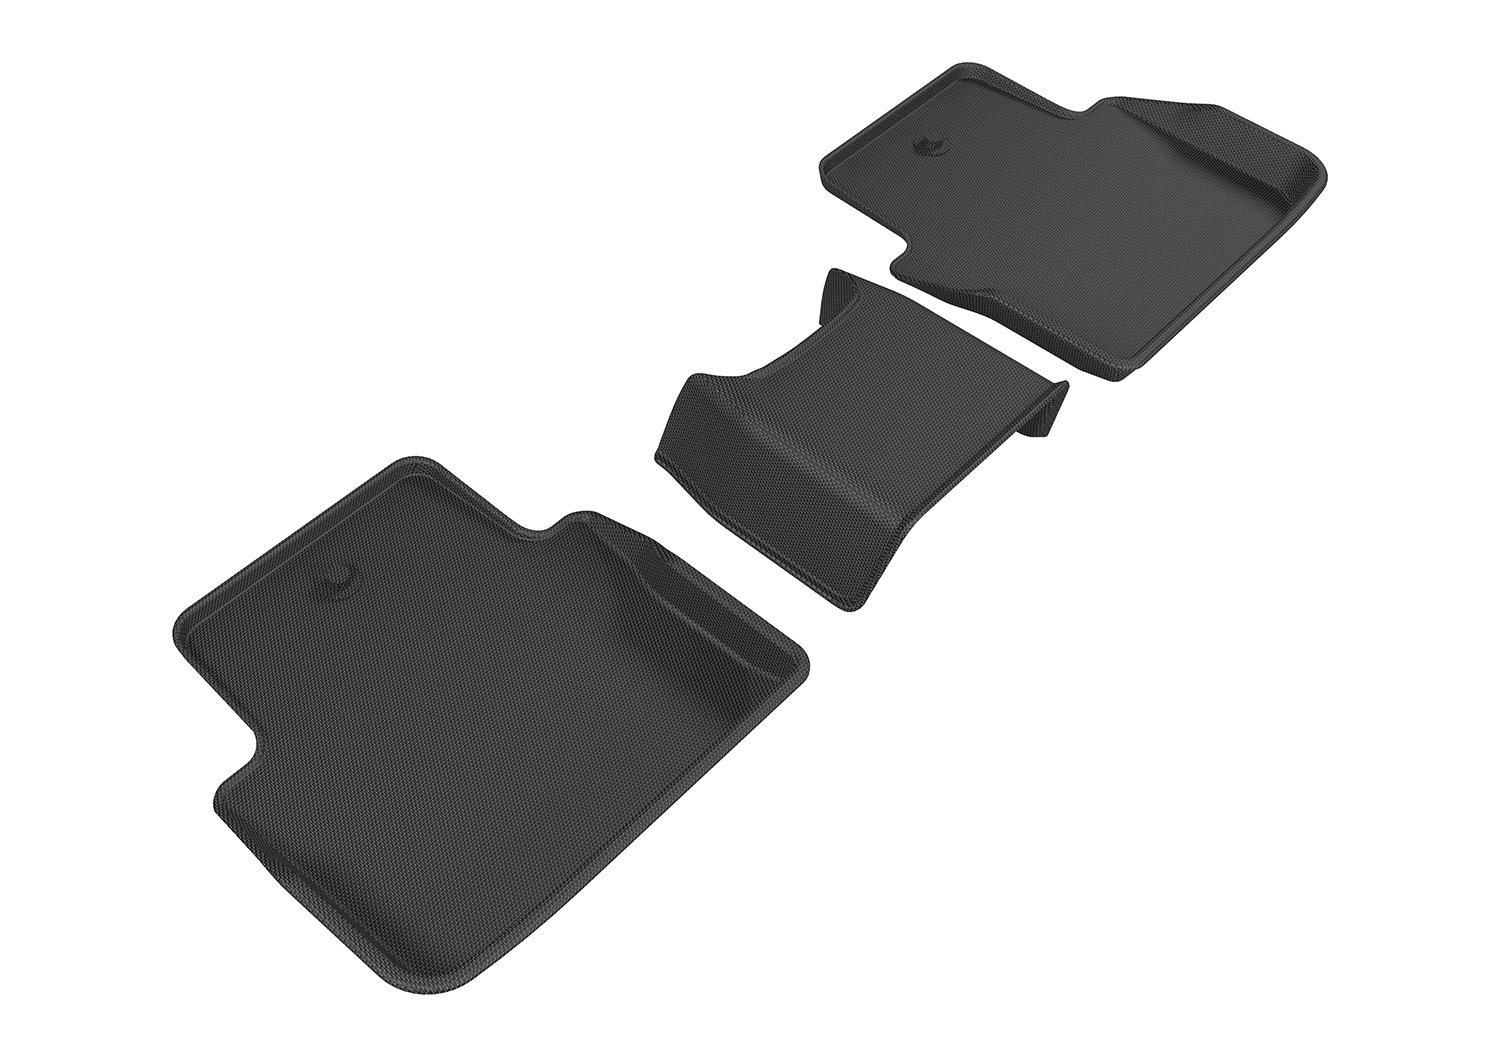 3D MAXpider Second Row Custom Fit All-Weather Floor Mat for Select Acura TLX Models Kagu Rubber Gray